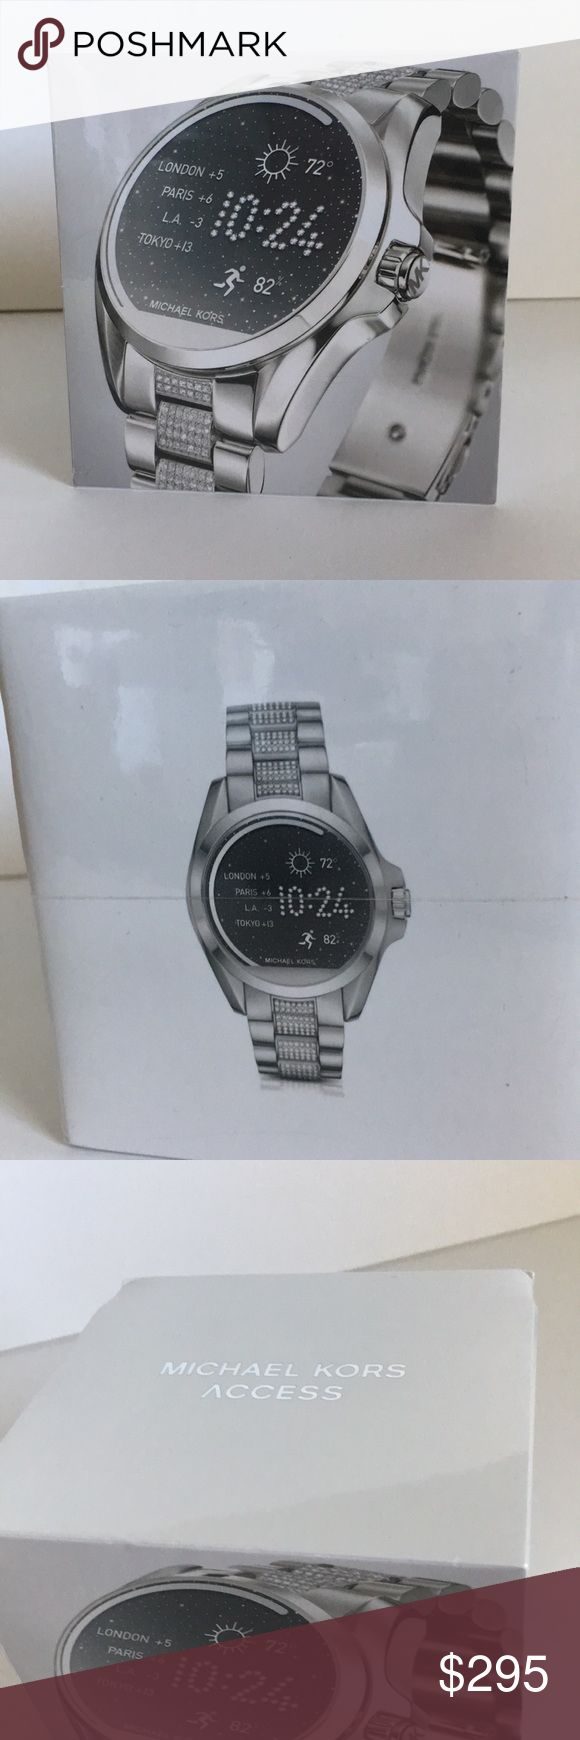 Michael kors smart watch New! Still sealed! Compatible with android and iPhone Michael Kors Accessories Watches